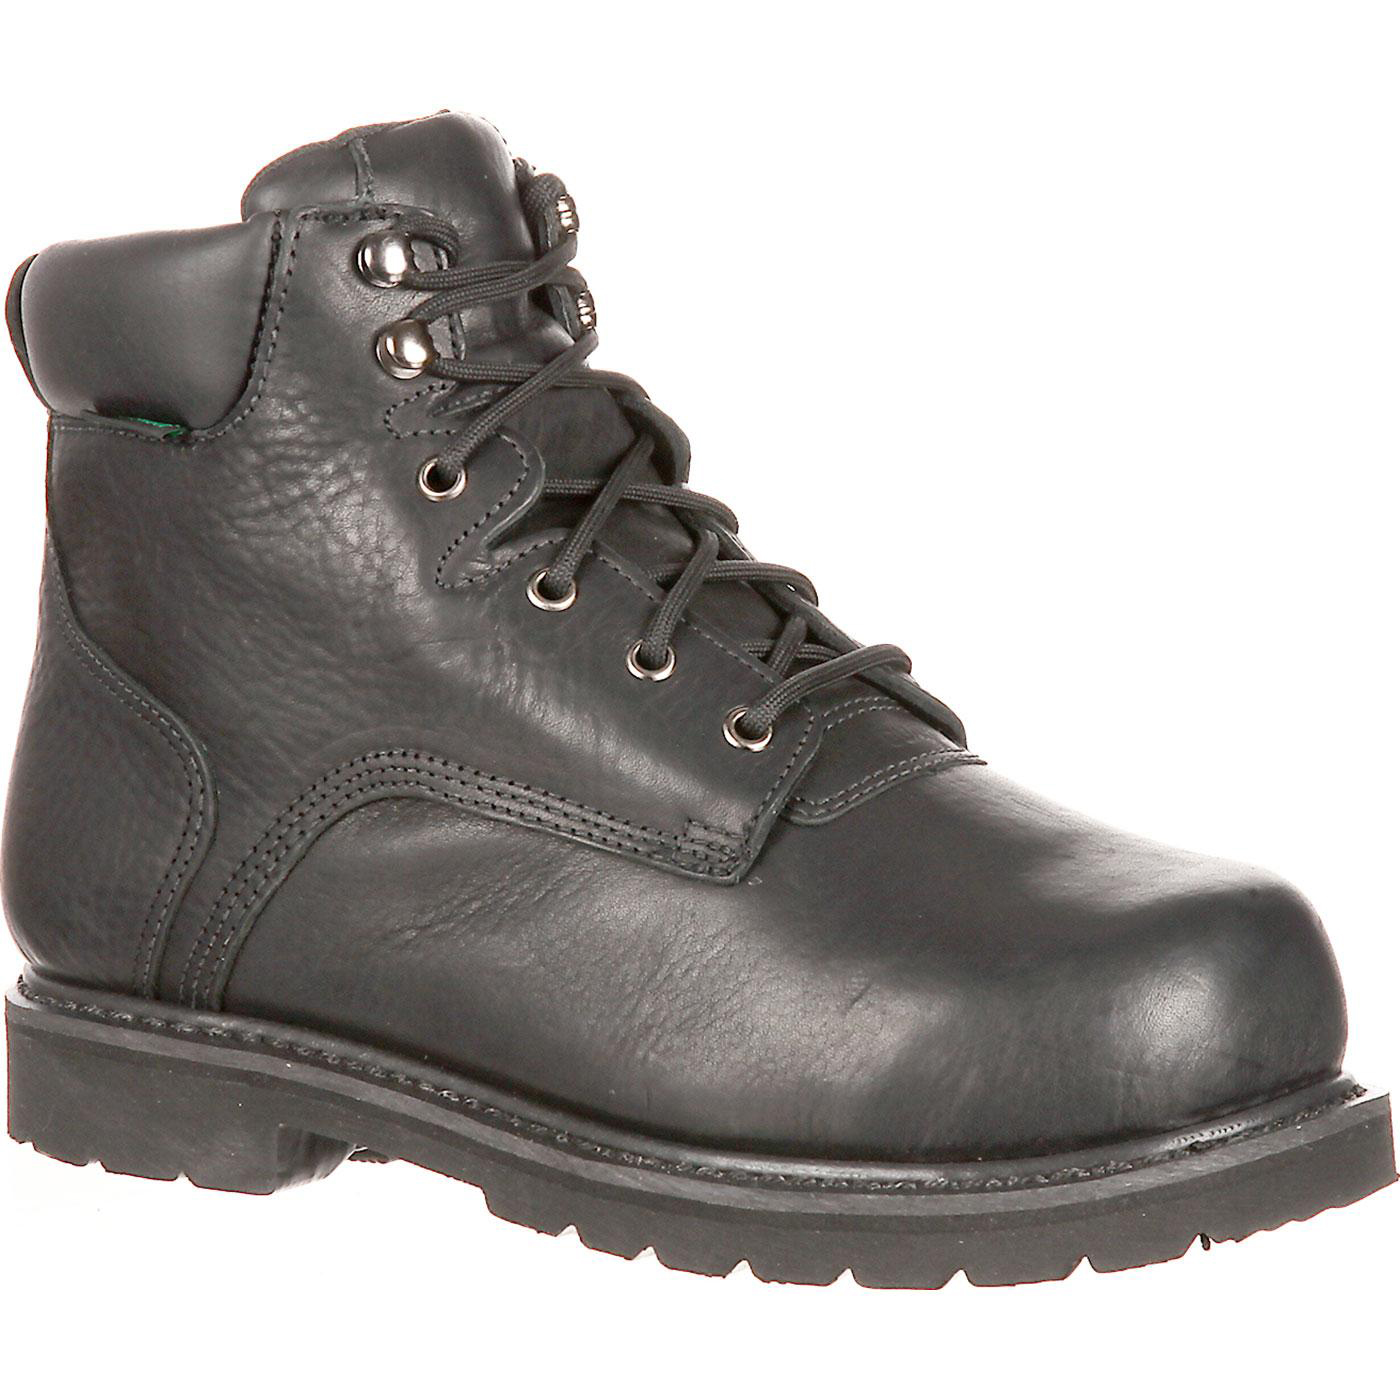 eea99243f9a ... Safety Shoes Unisex Steel Toe Met Guard Waterproof Work BootQUICKFIT  Collection  Lehigh Safety Shoes Unisex Steel Toe Met Guard Waterproof Work  Boot